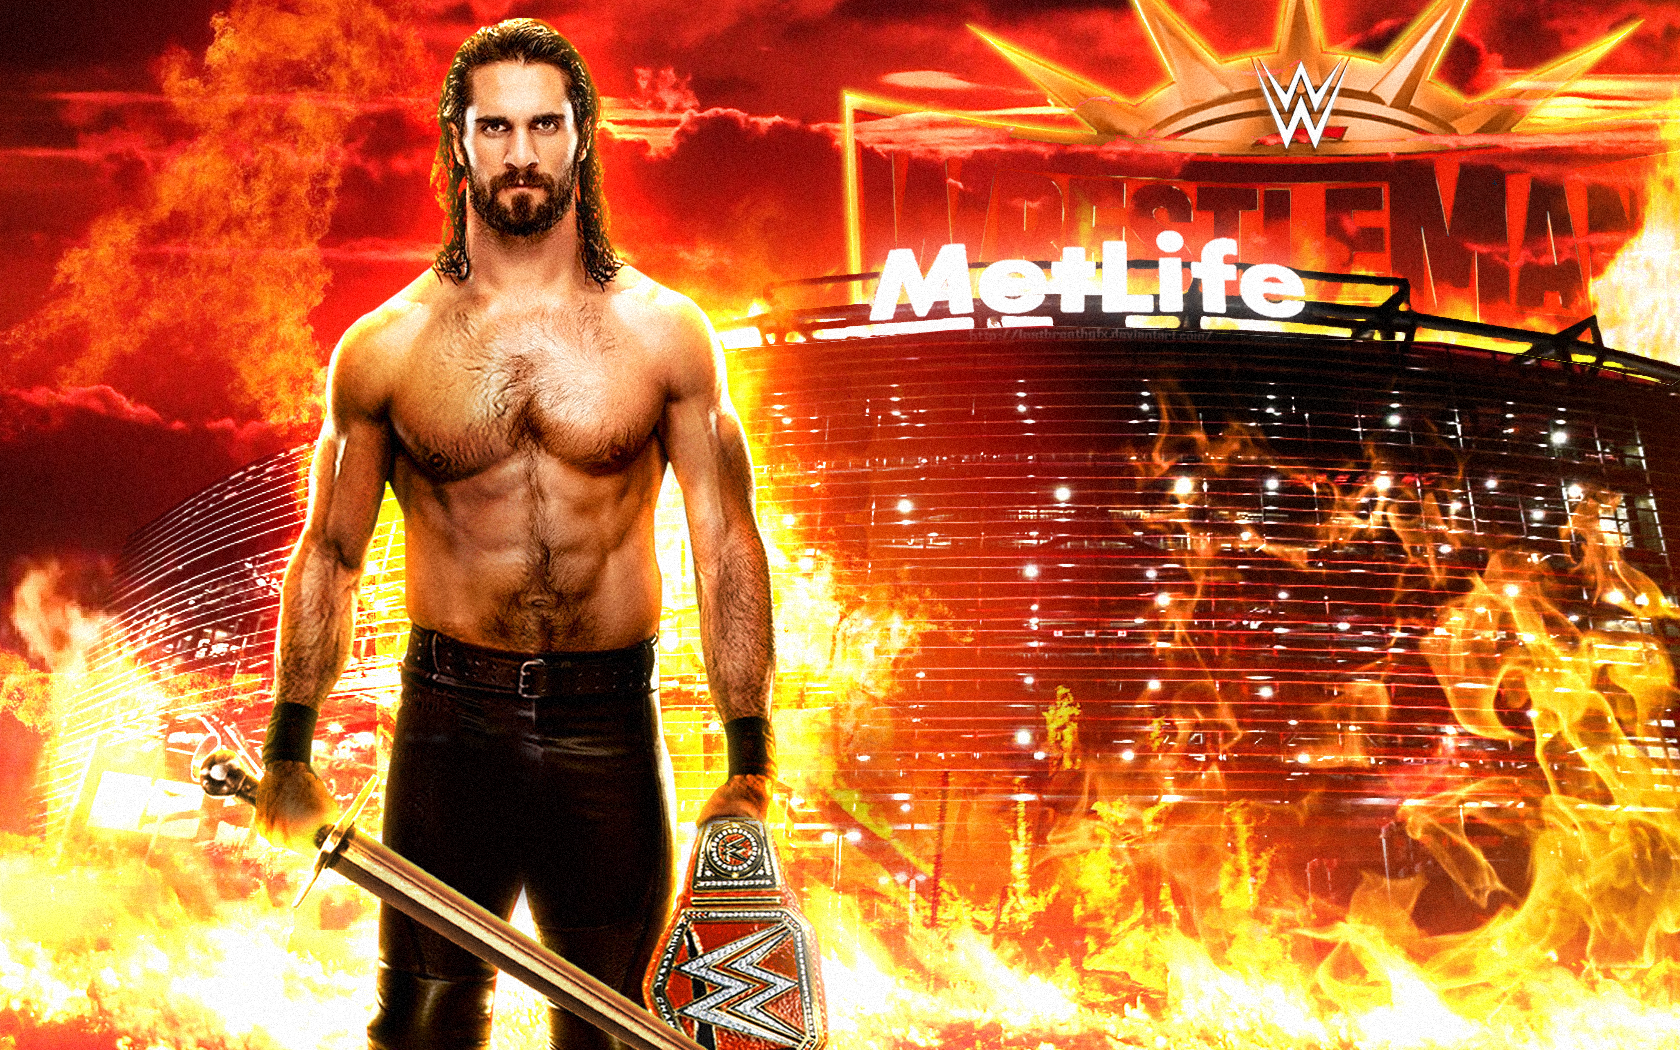 Wwe Seth Rollins Slay The Beast Wallpaper 2019 By